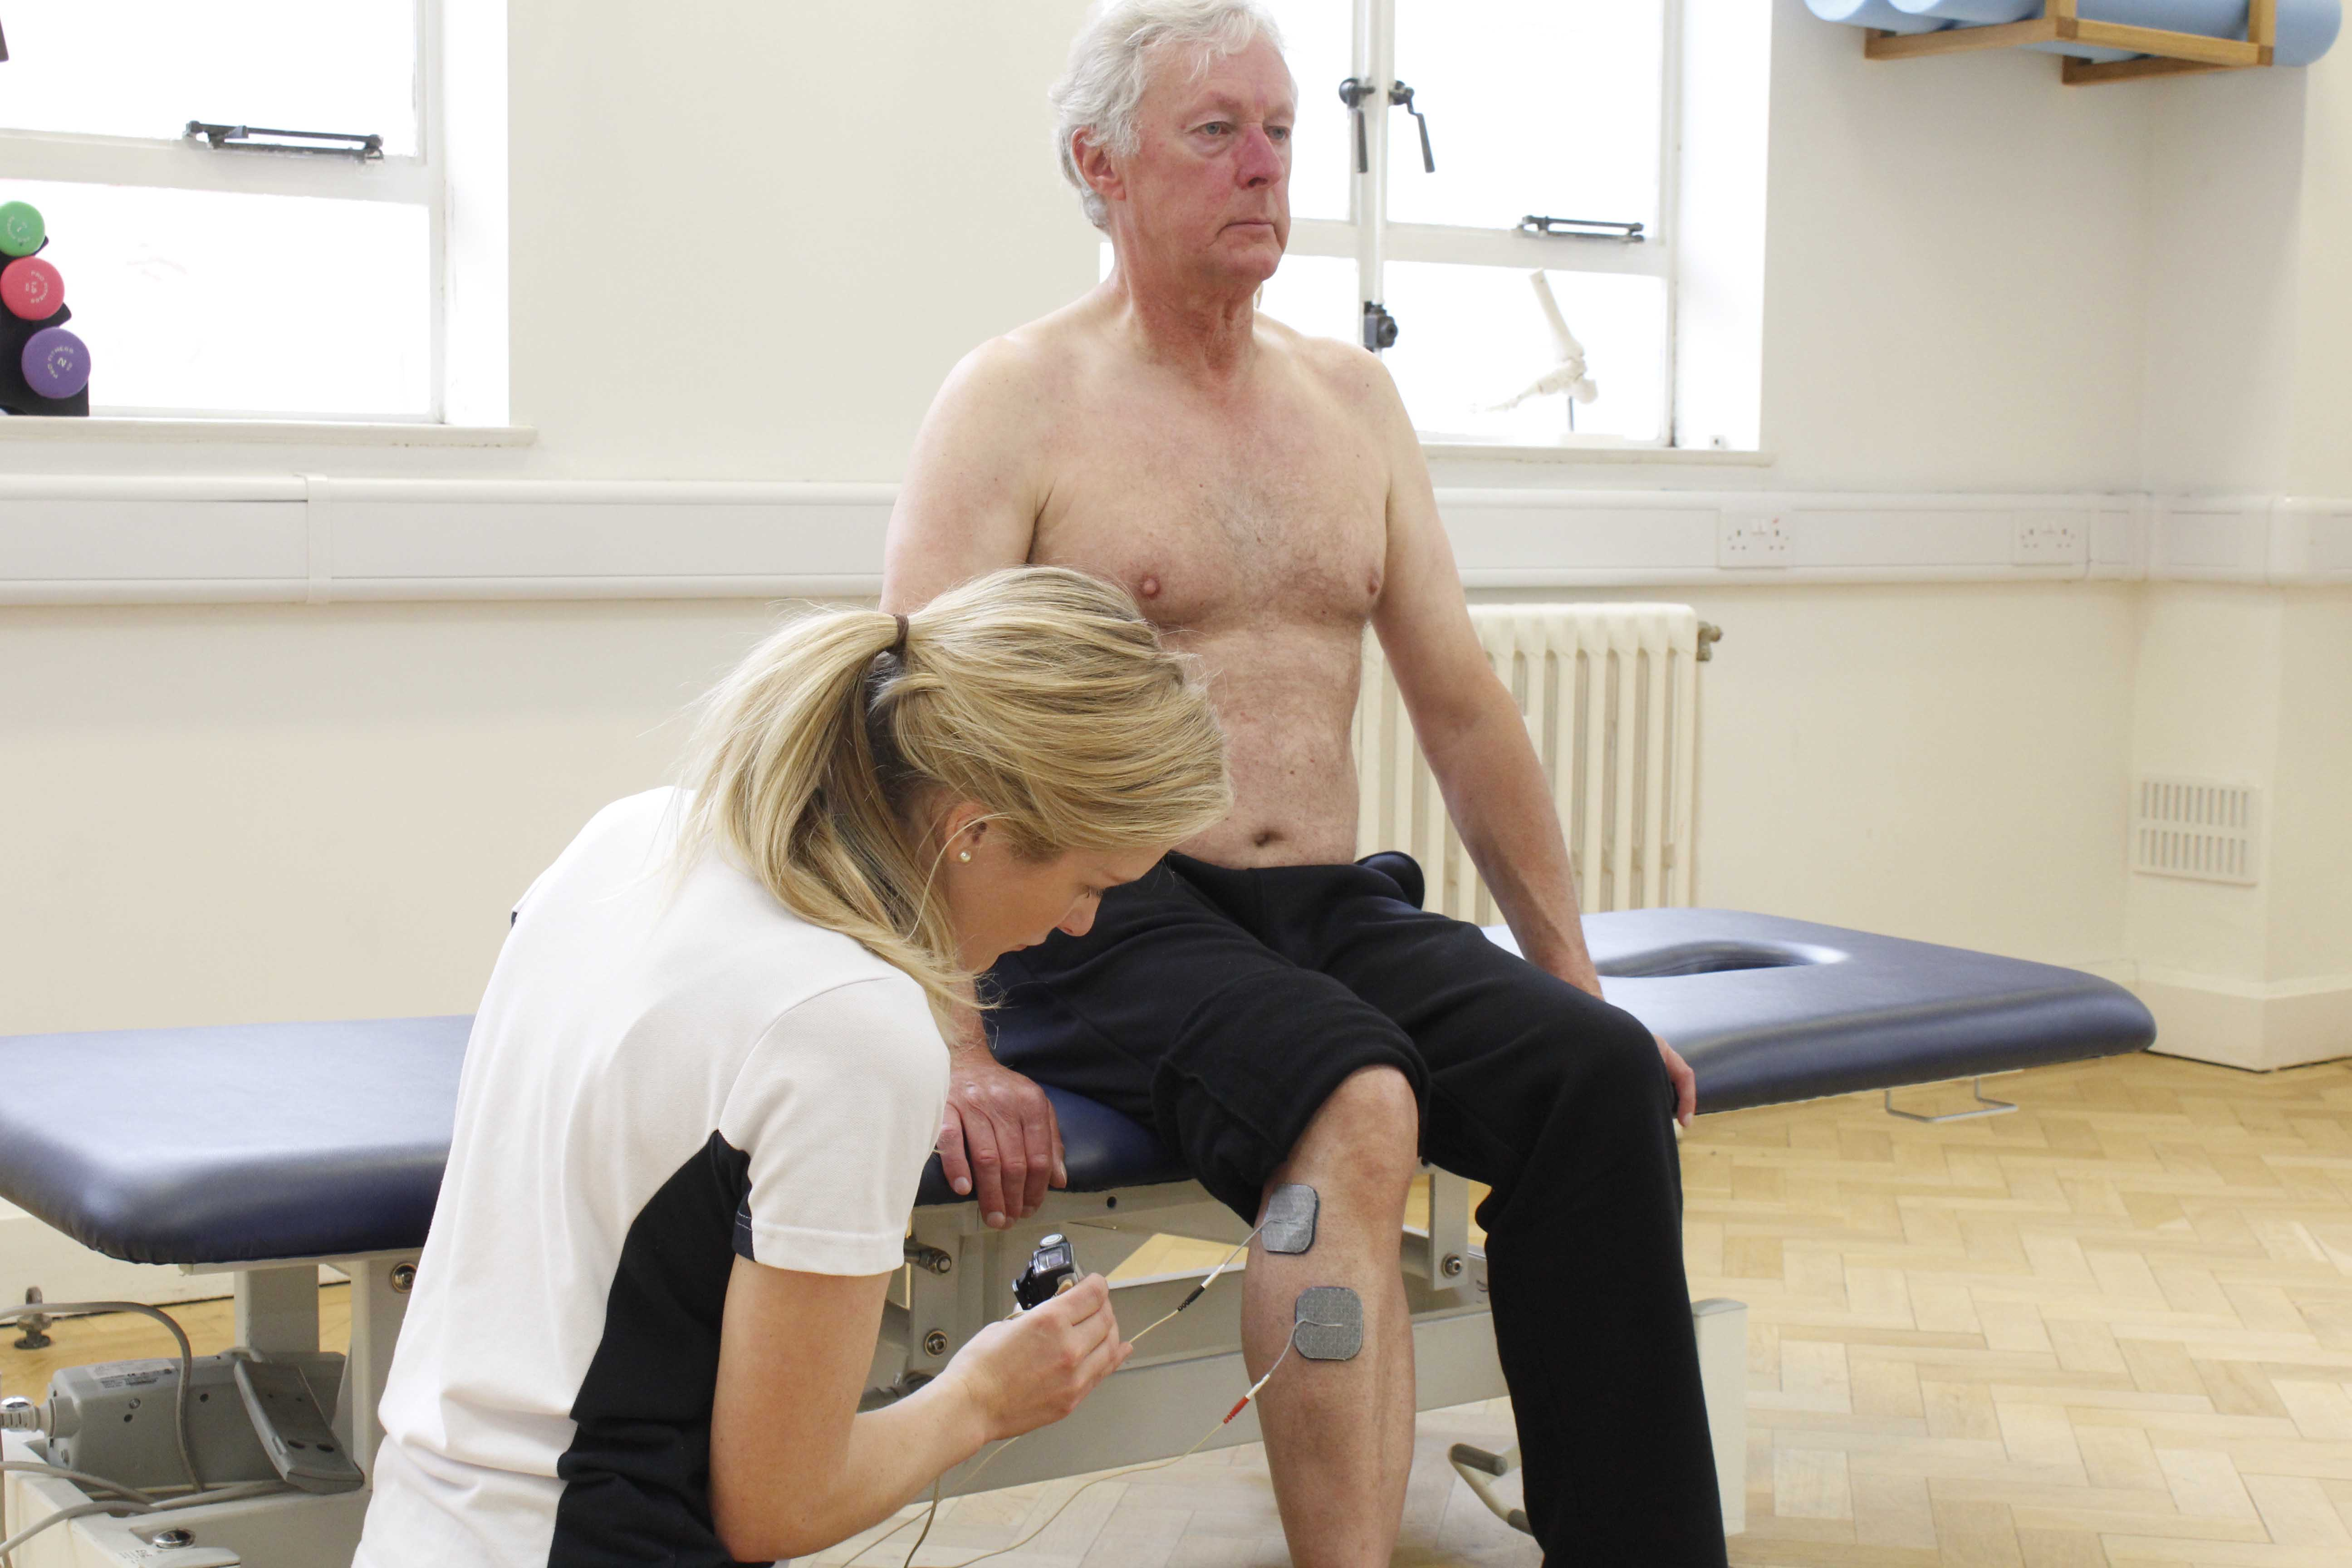 Specialist physiotherapist applying electrical stimulaton to alleviate pain and stiffness